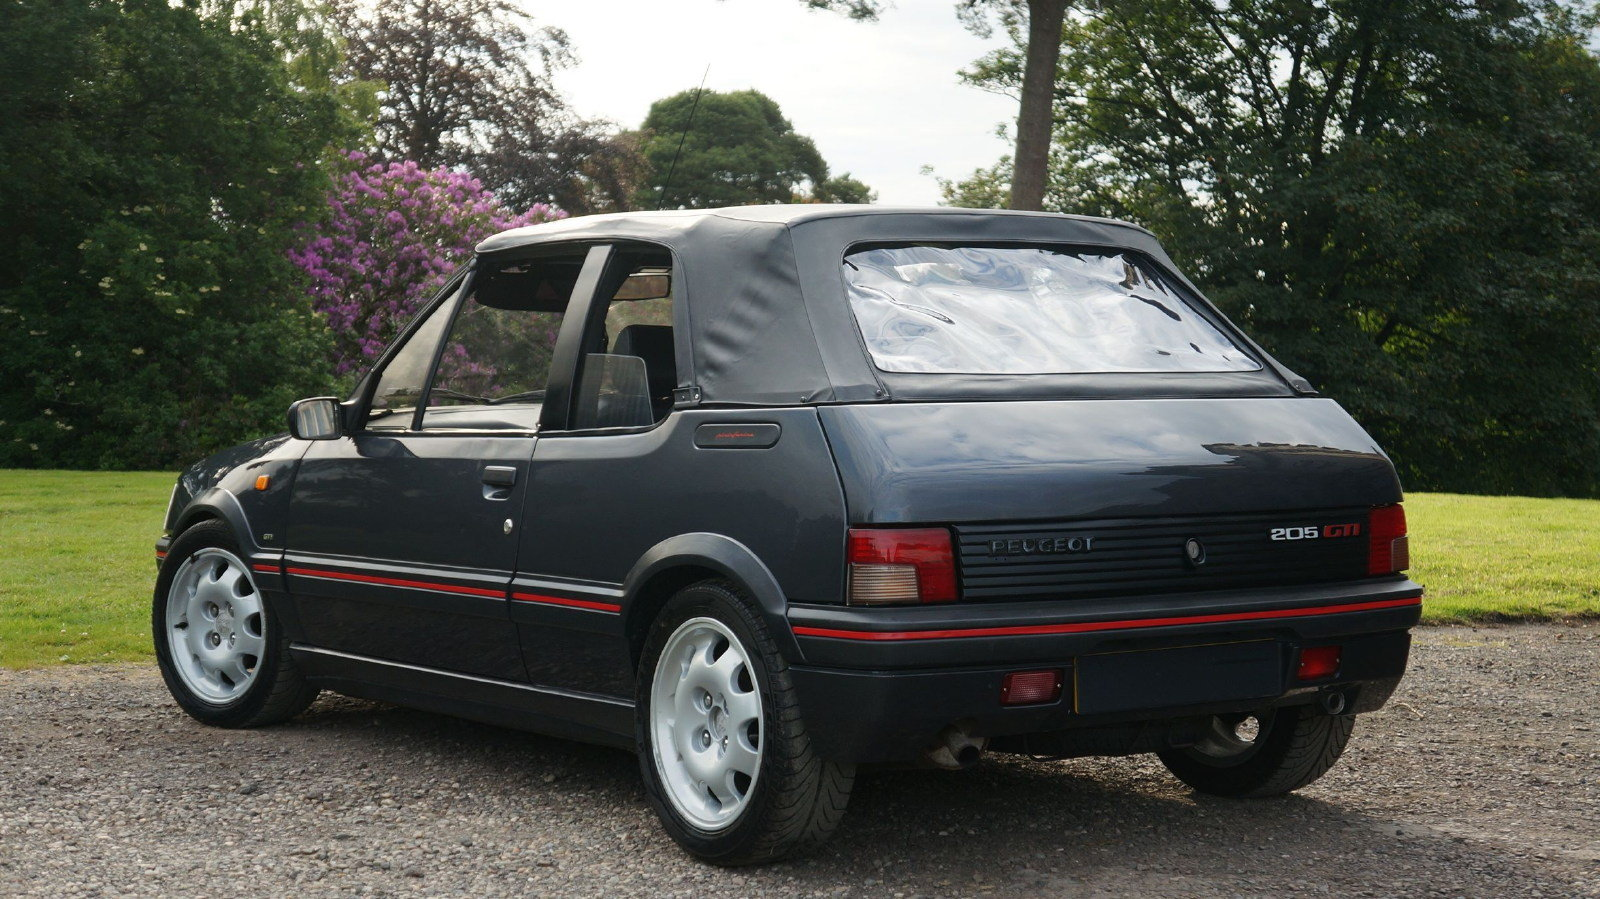 1993 Peugeot 205 CTi 1.9 GTI Convertible Cabriolet For Sale (picture 4 of 6)